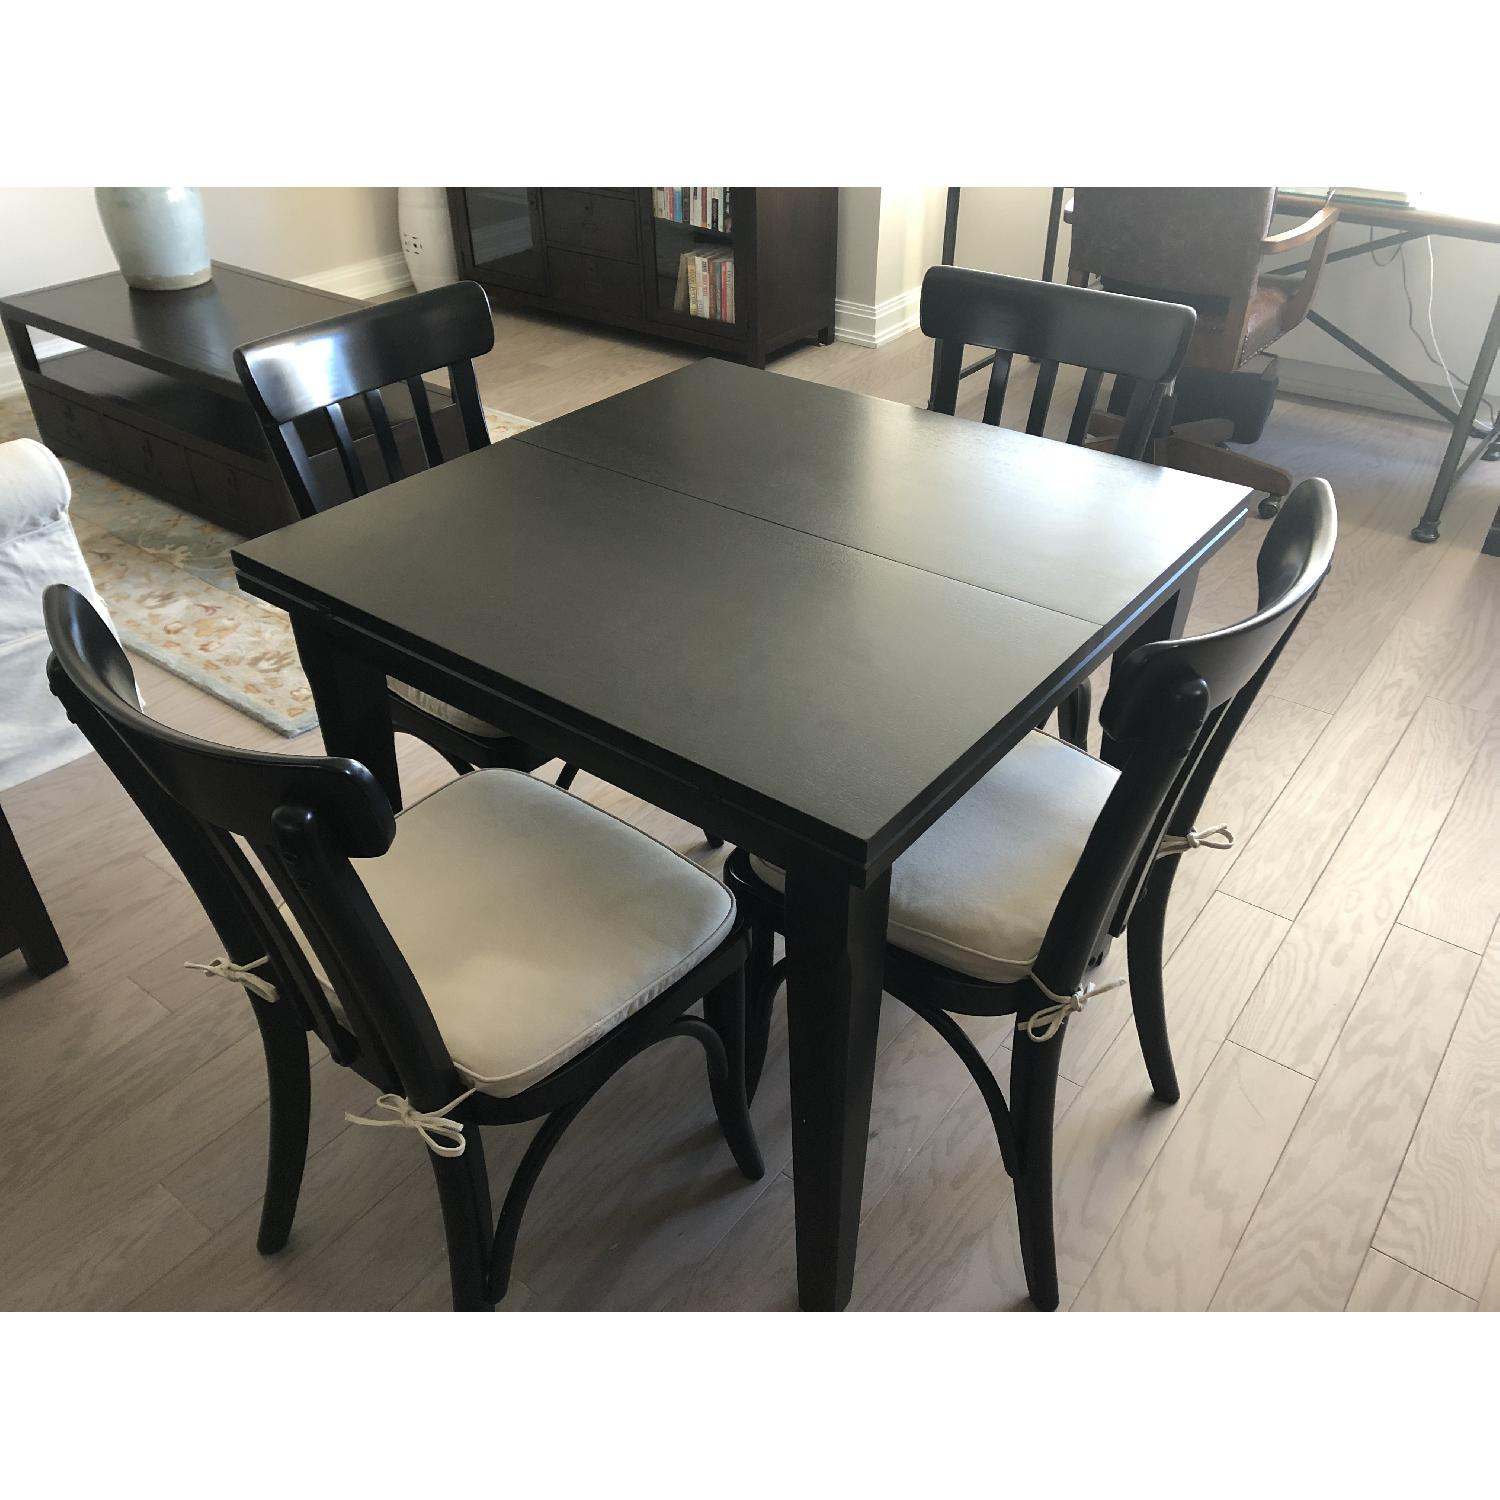 Pottery Barn Maren Dining Table-2